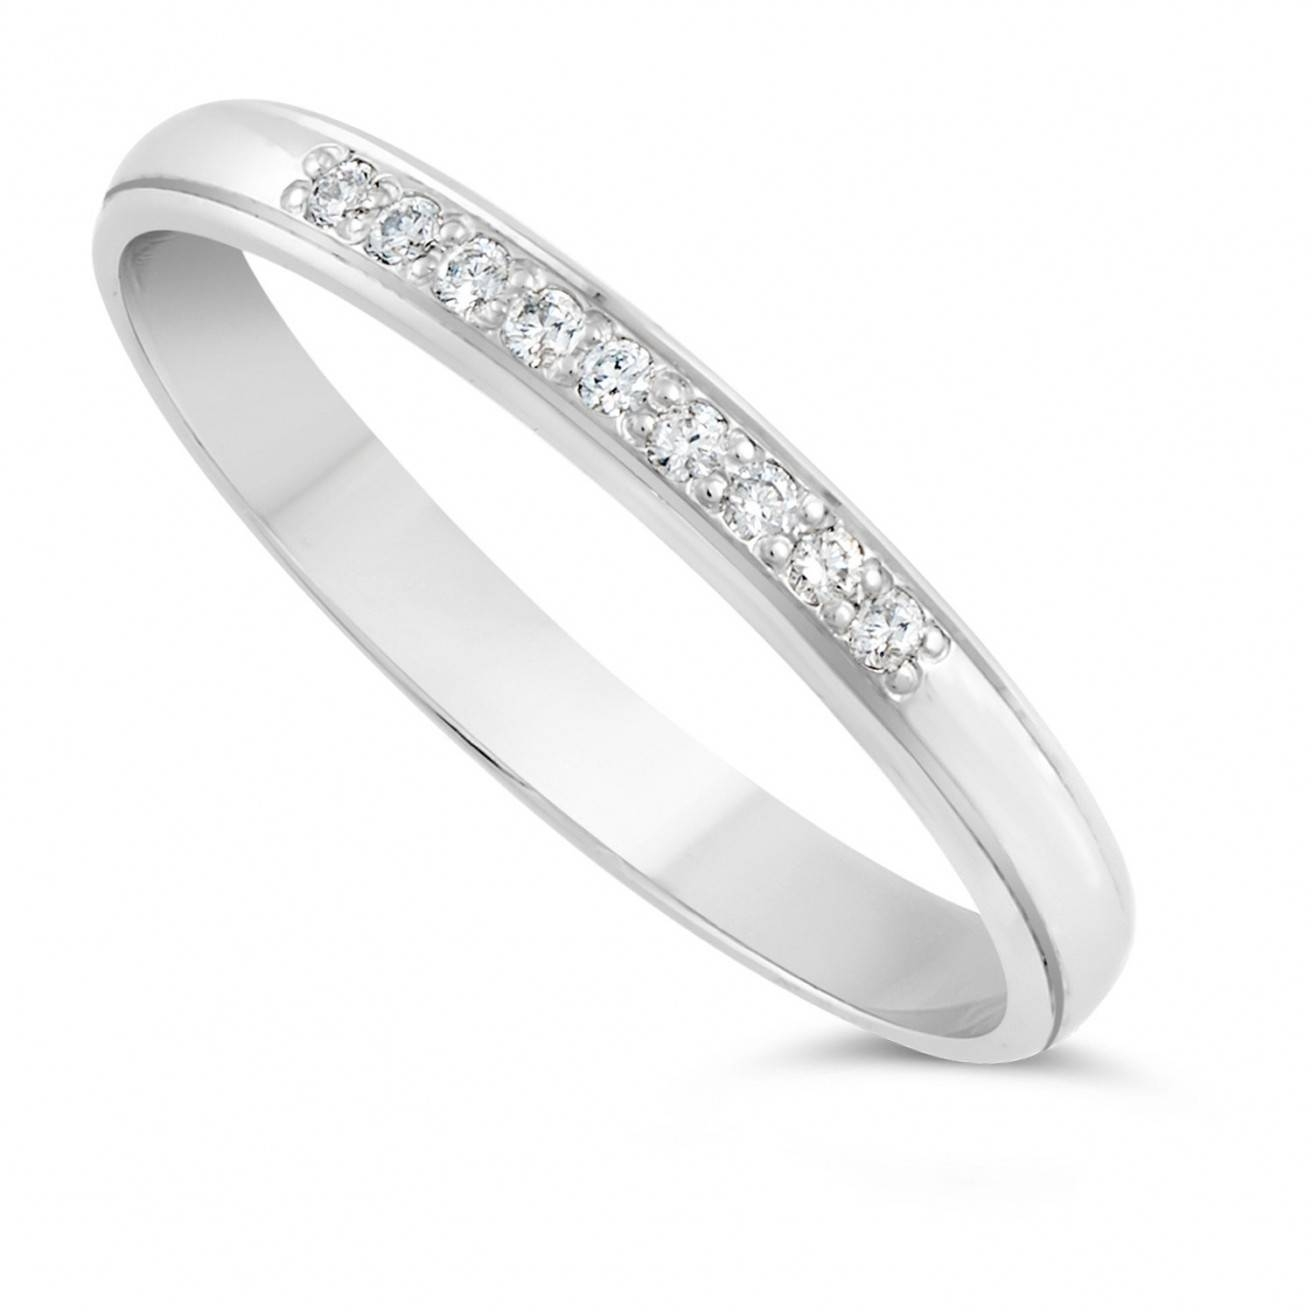 buy wedding rings online fieldsie for platinum wedding bands for her gallery - Platinum Wedding Rings For Her